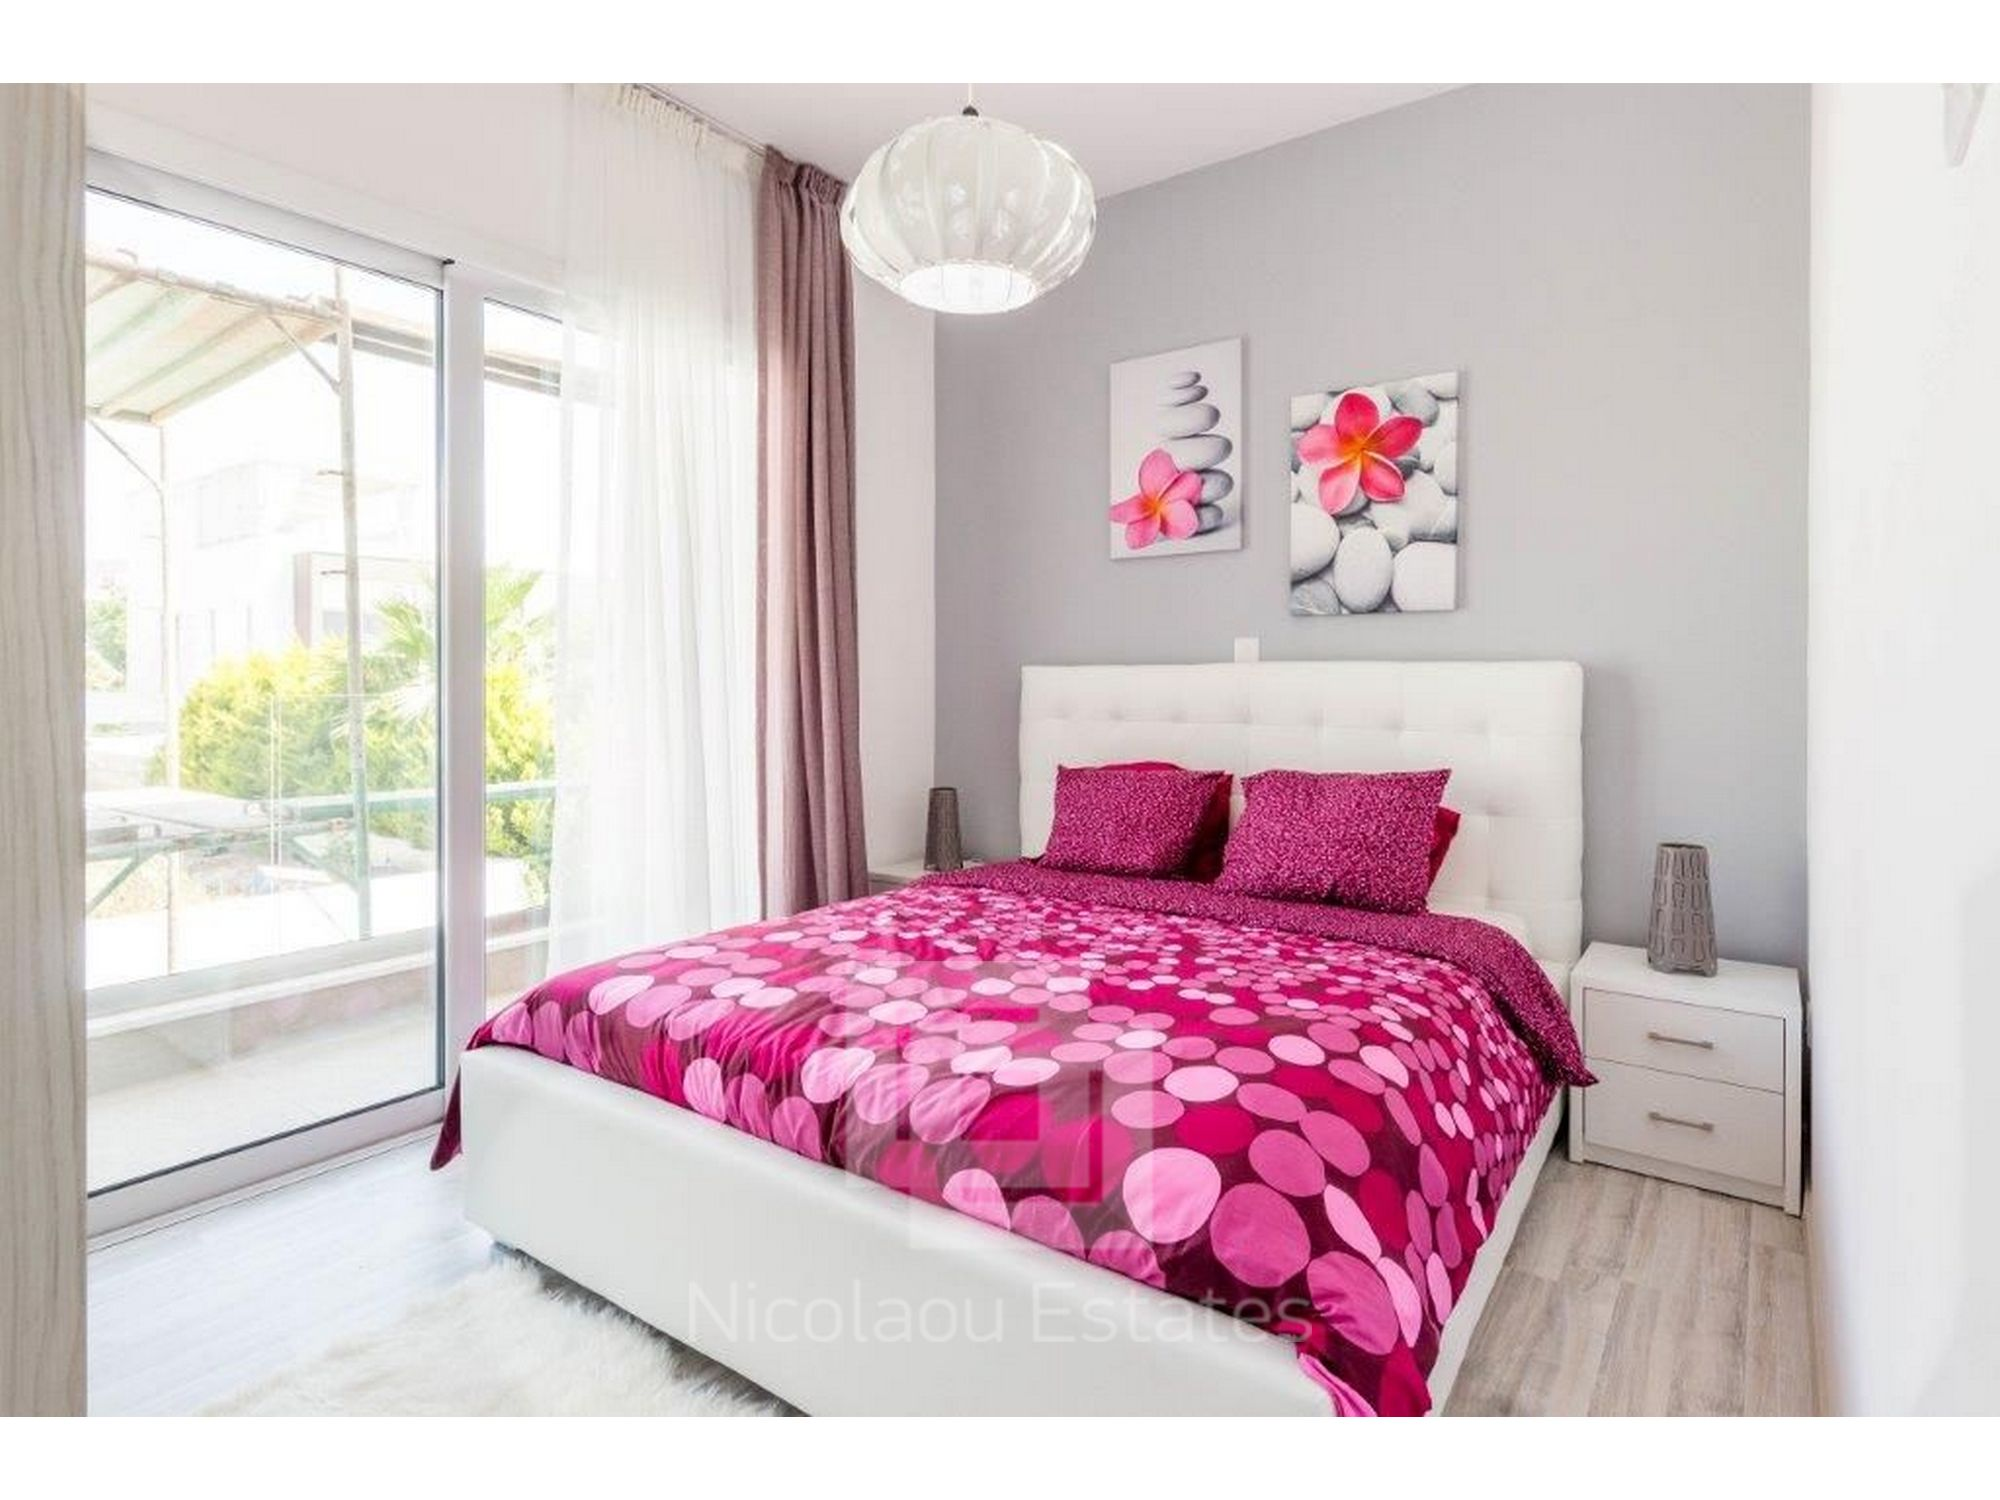 For Sale  Brand New Three Bedroom House For Sale In